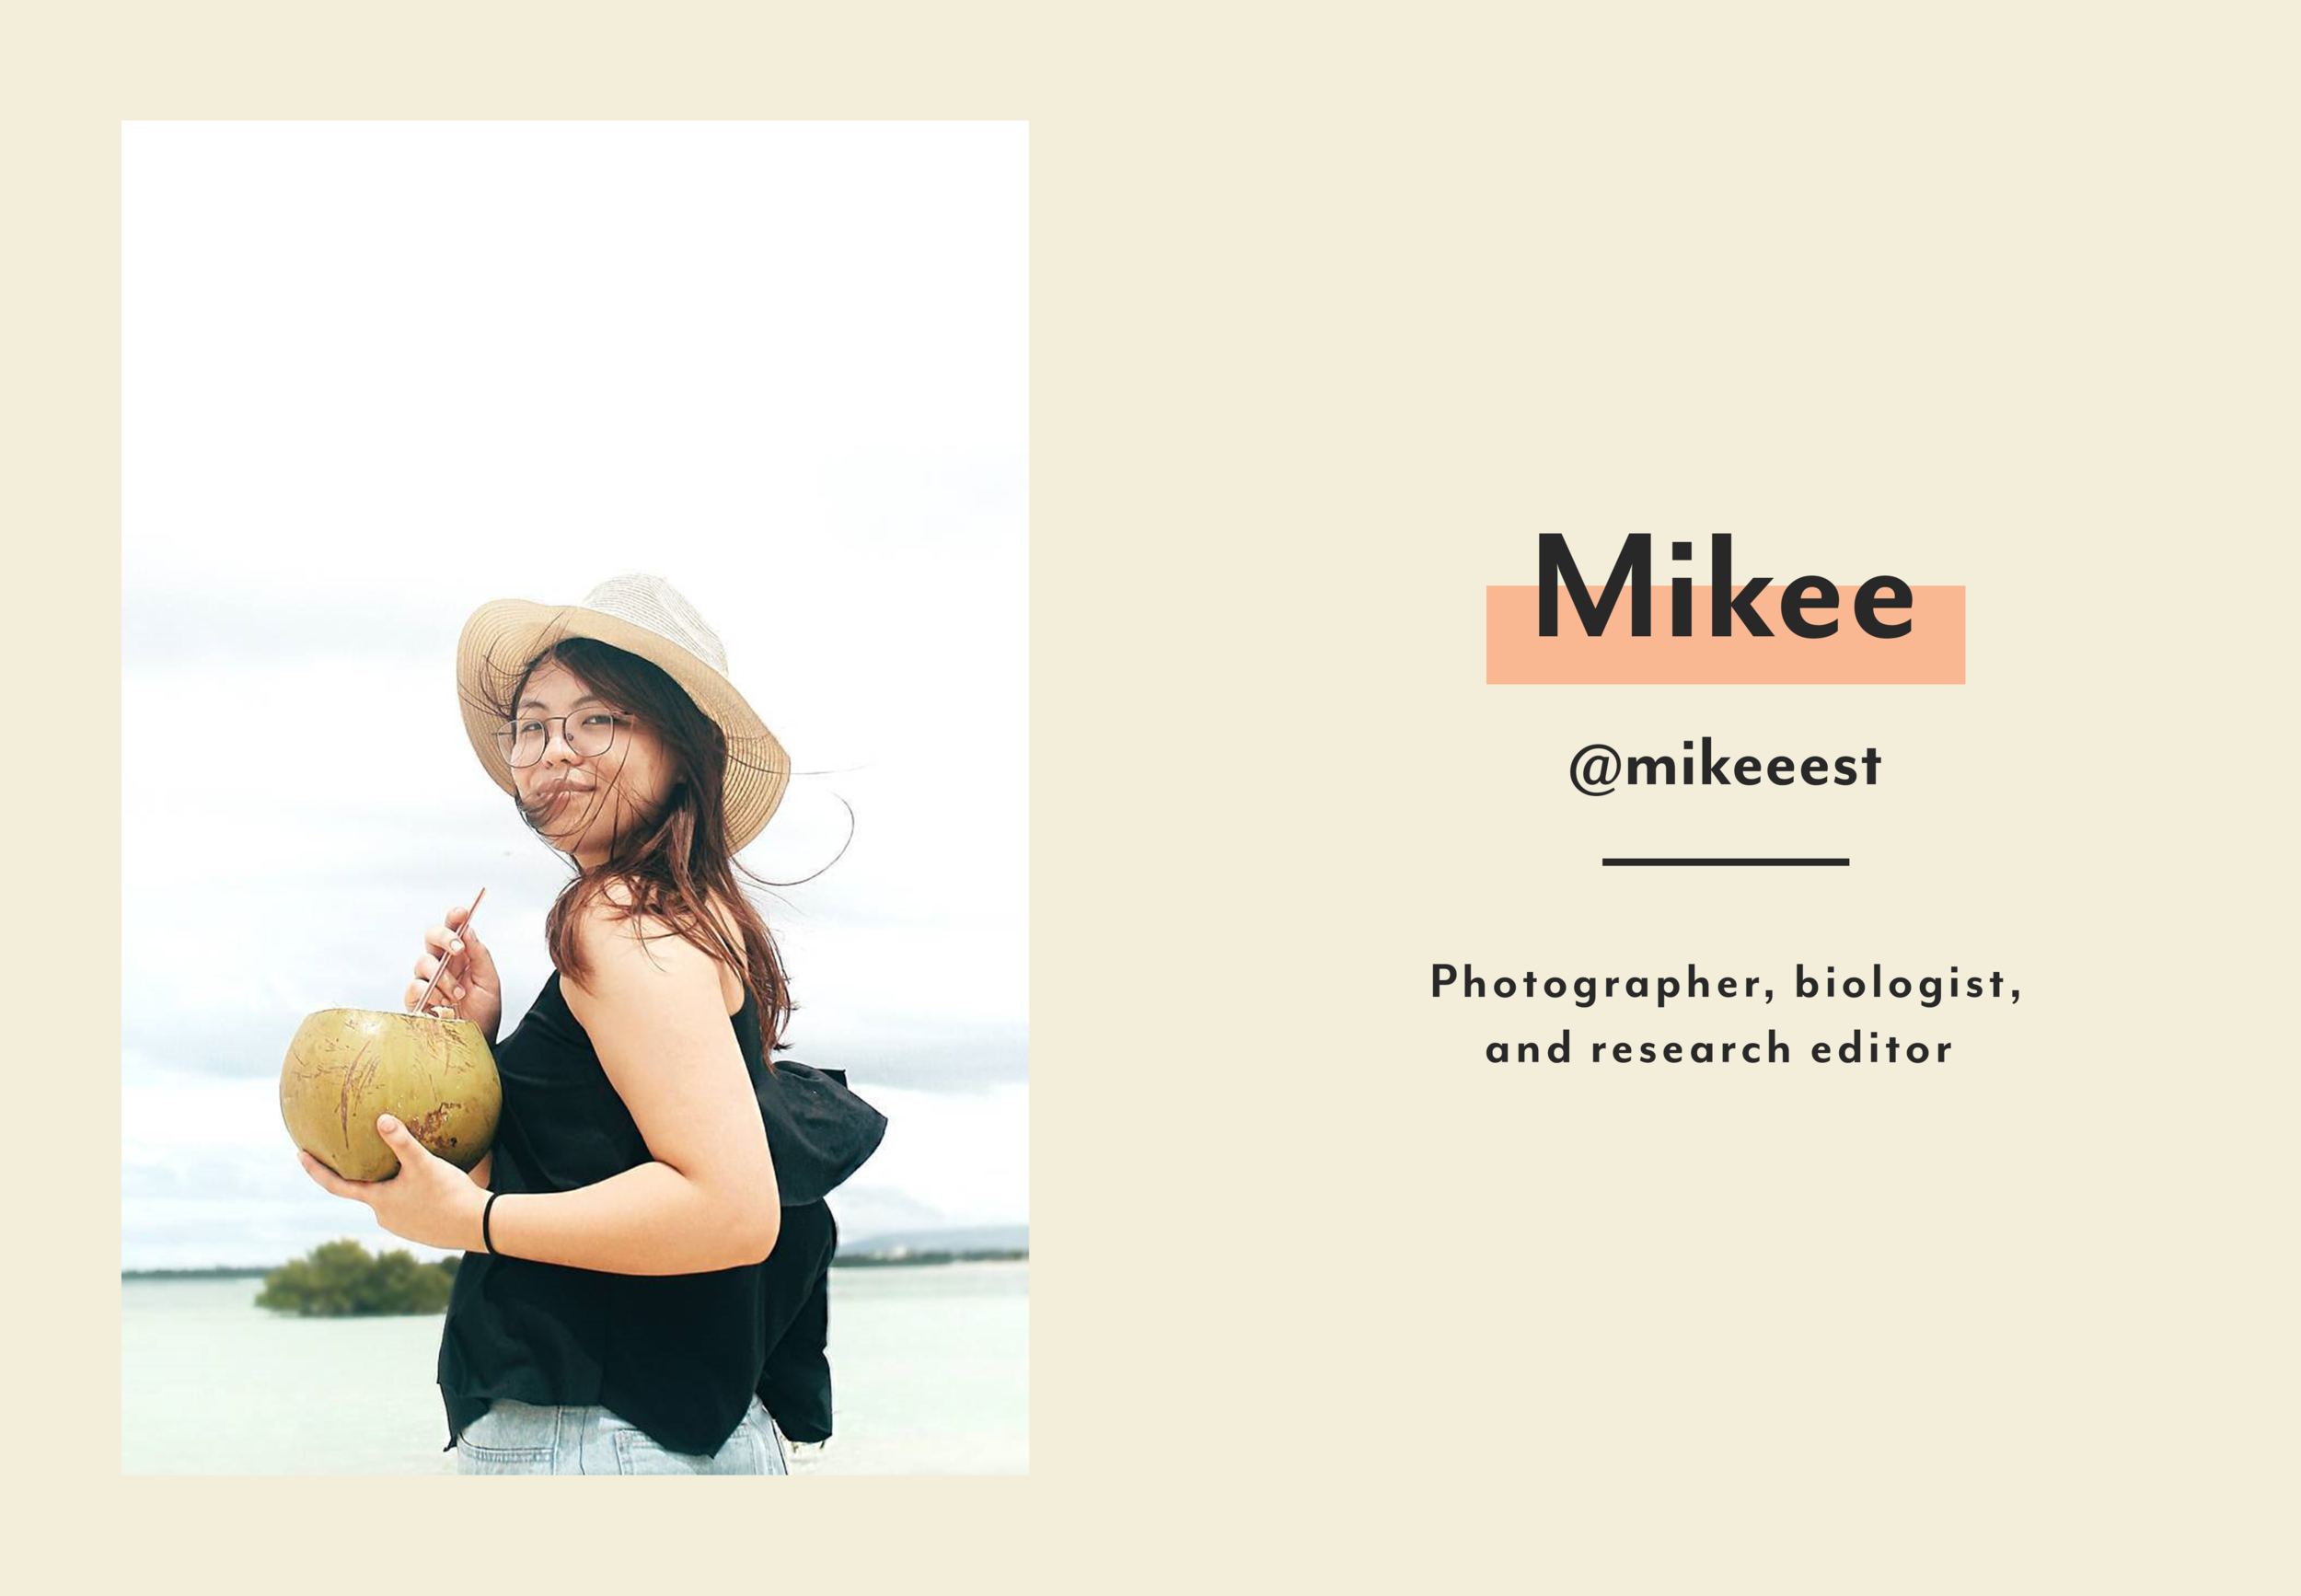 MIKEE_1.png